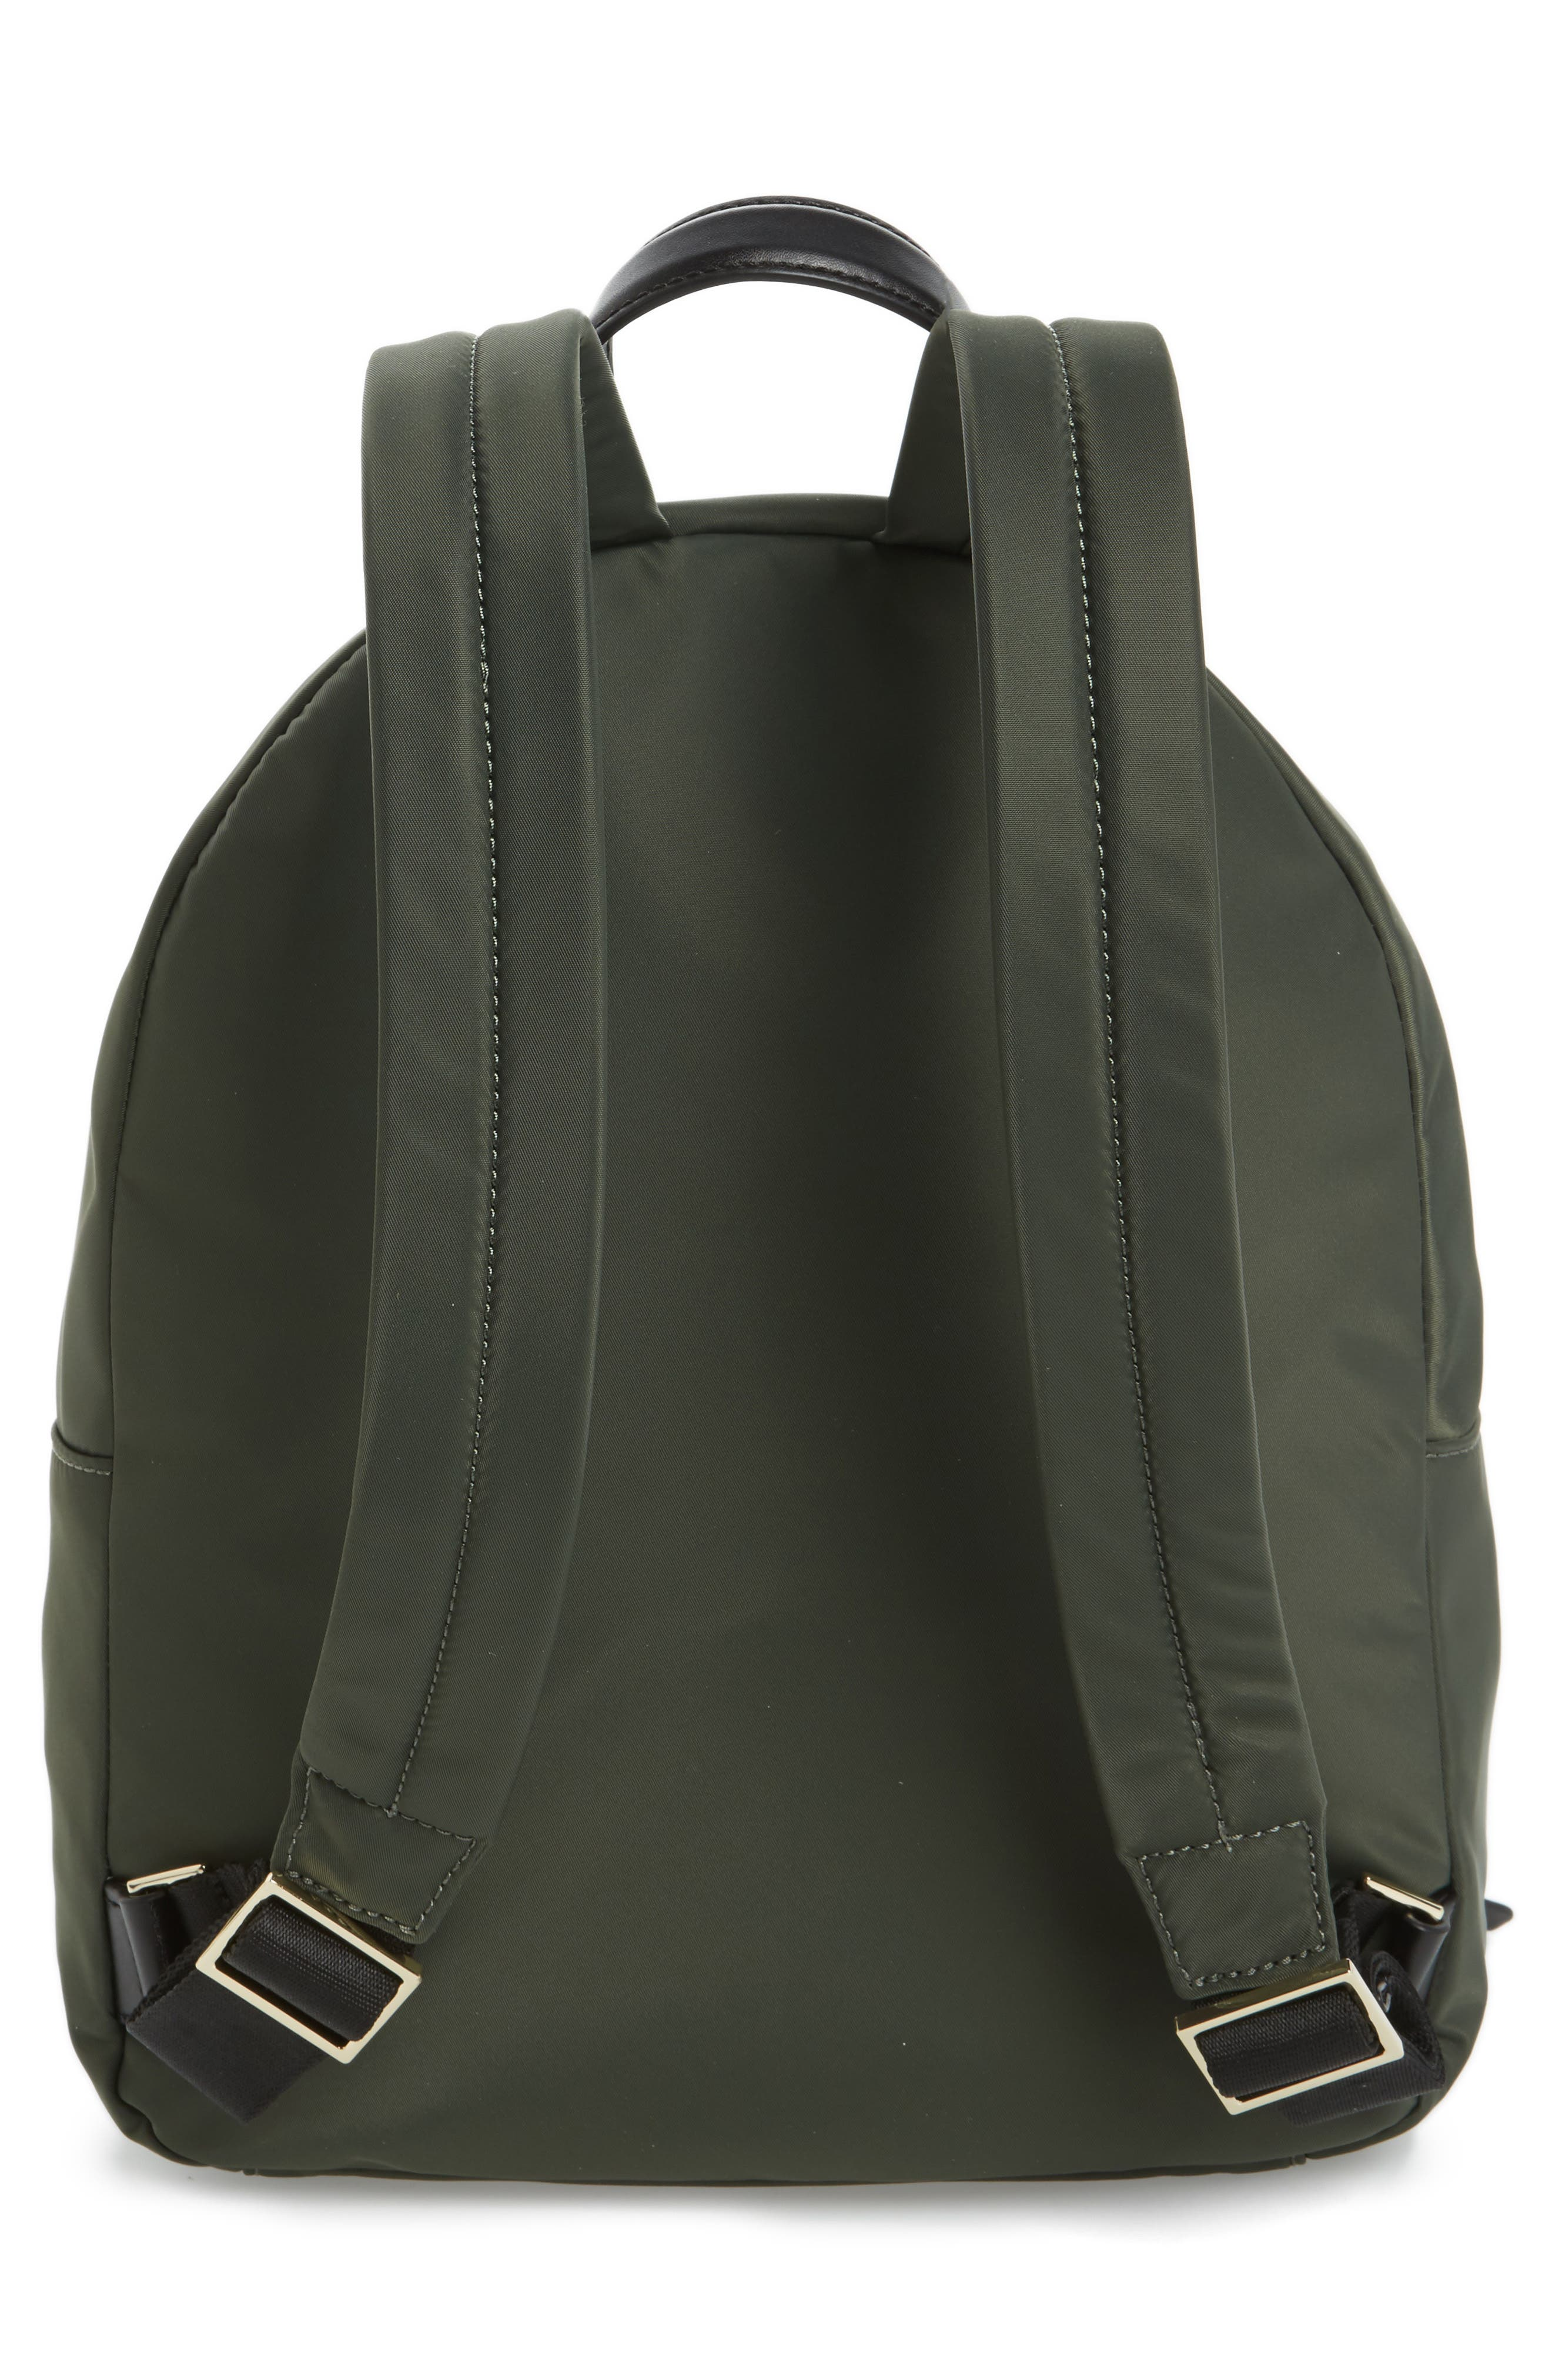 watson lane - hartley nylon backpack,                             Alternate thumbnail 3, color,                             316